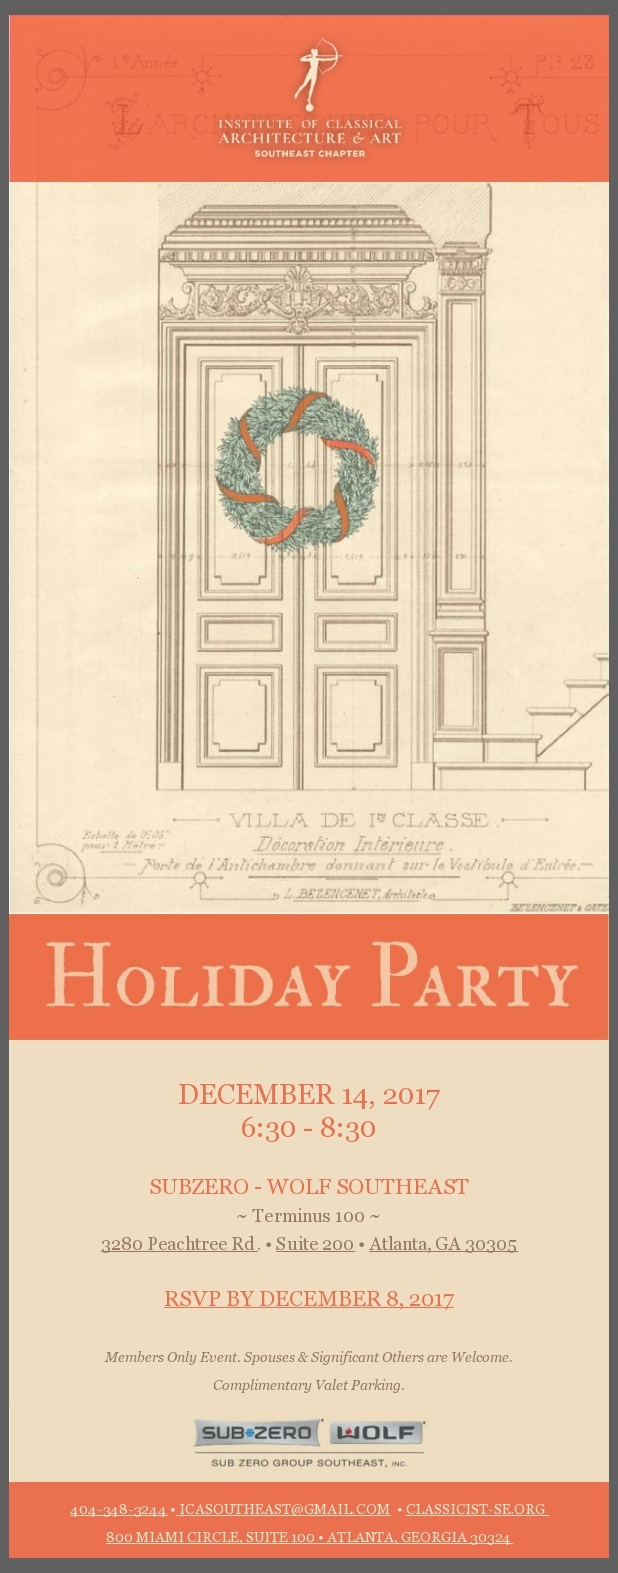 Southeast Holiday Party 1